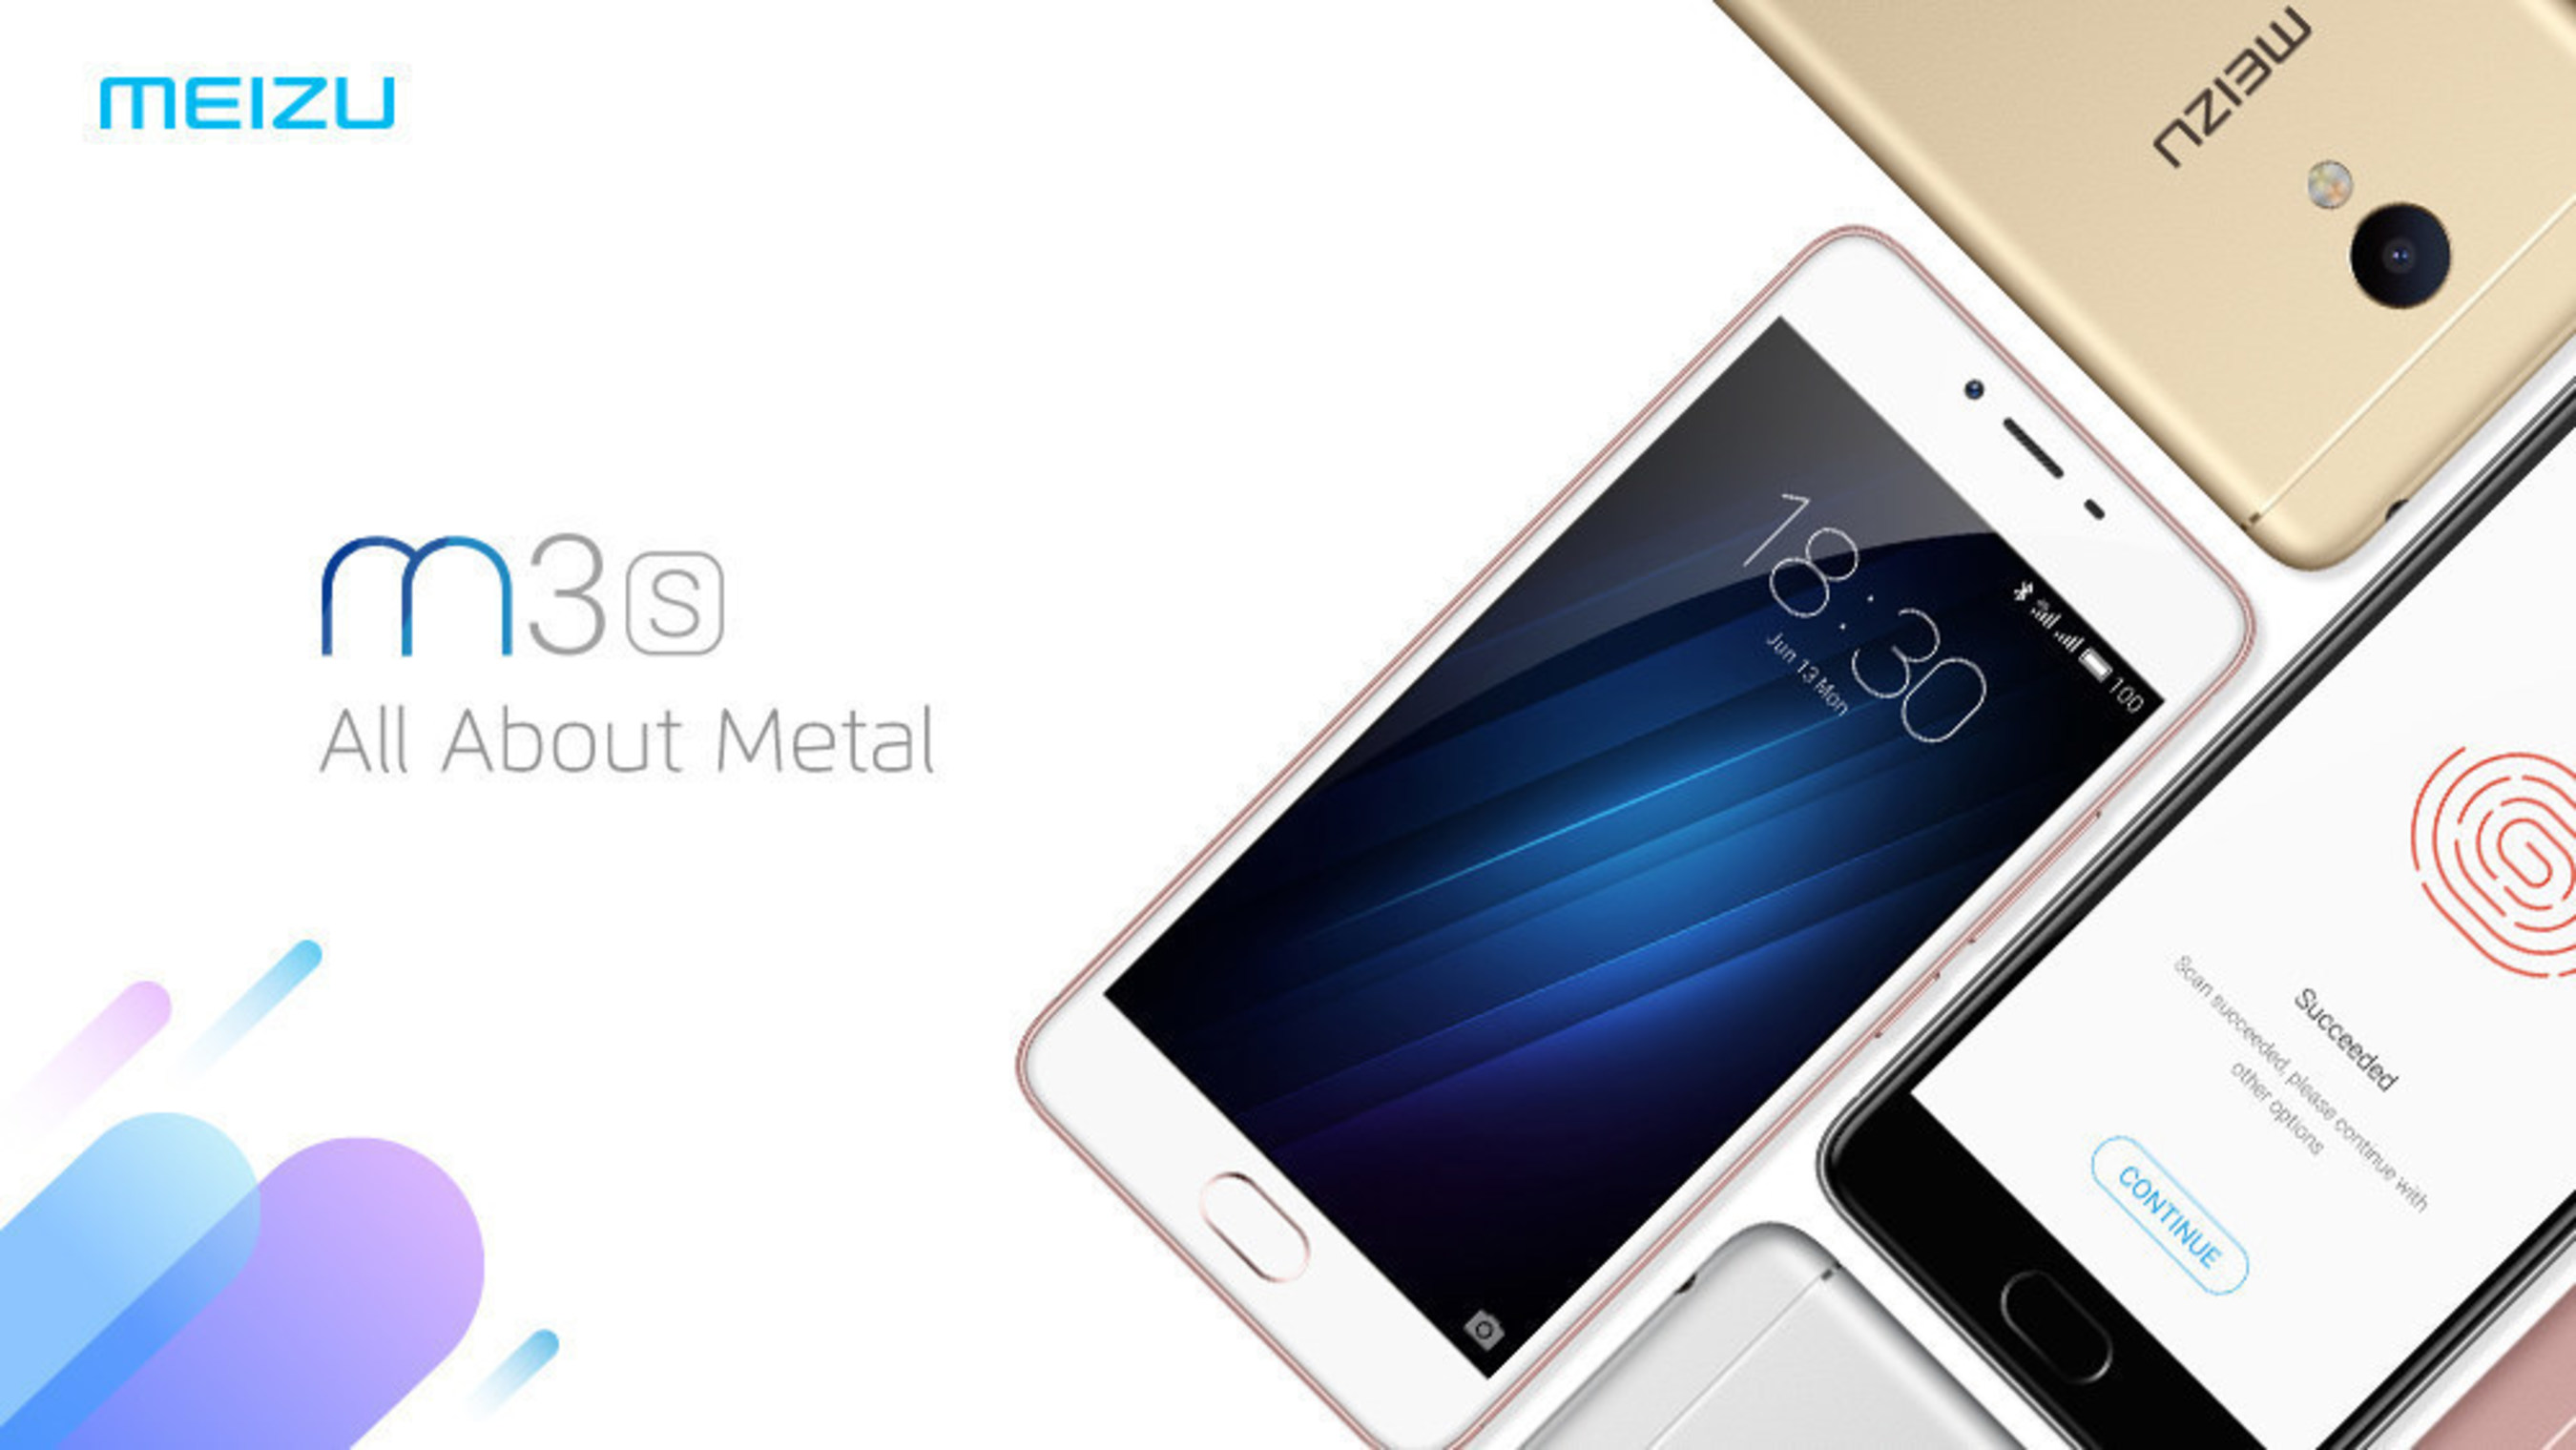 MEIZU m3s: All About Metal